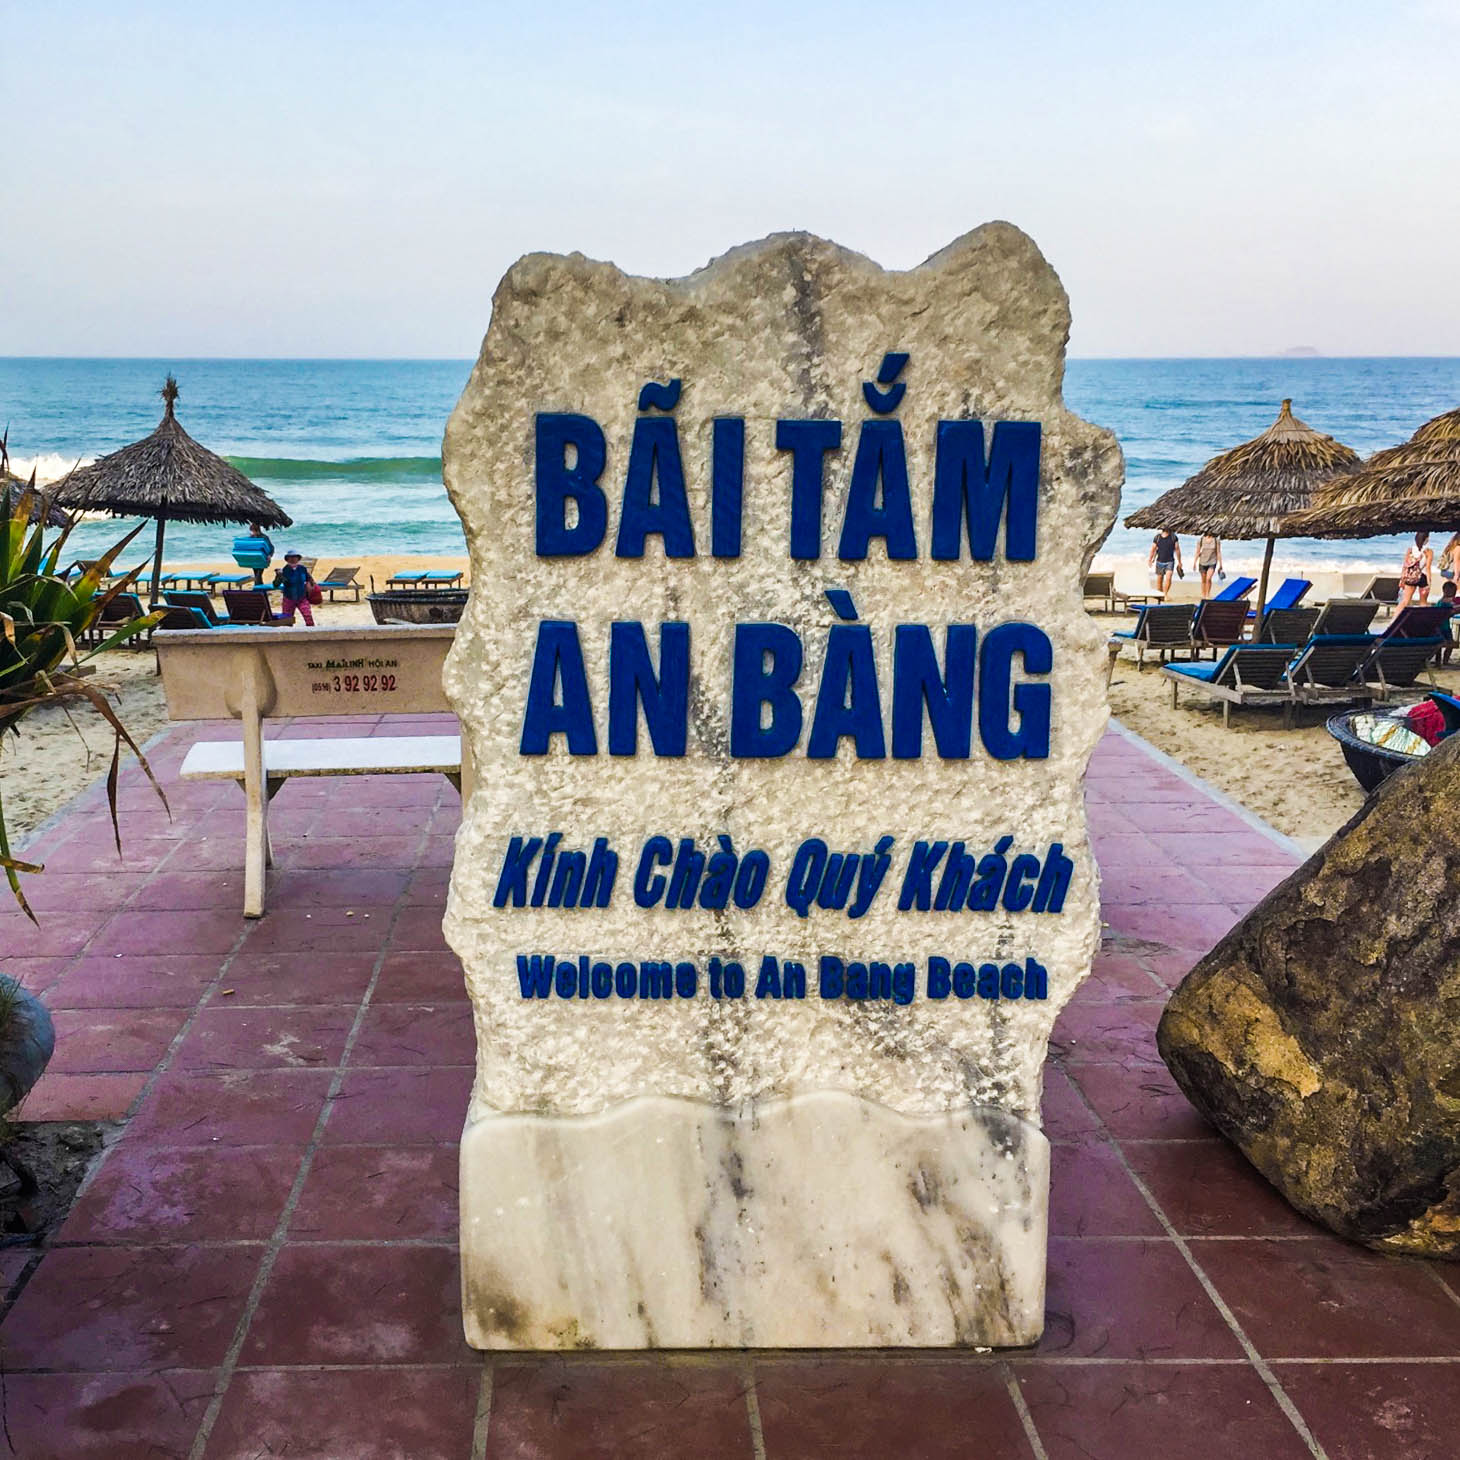 Copy of An Bang, Vietnam